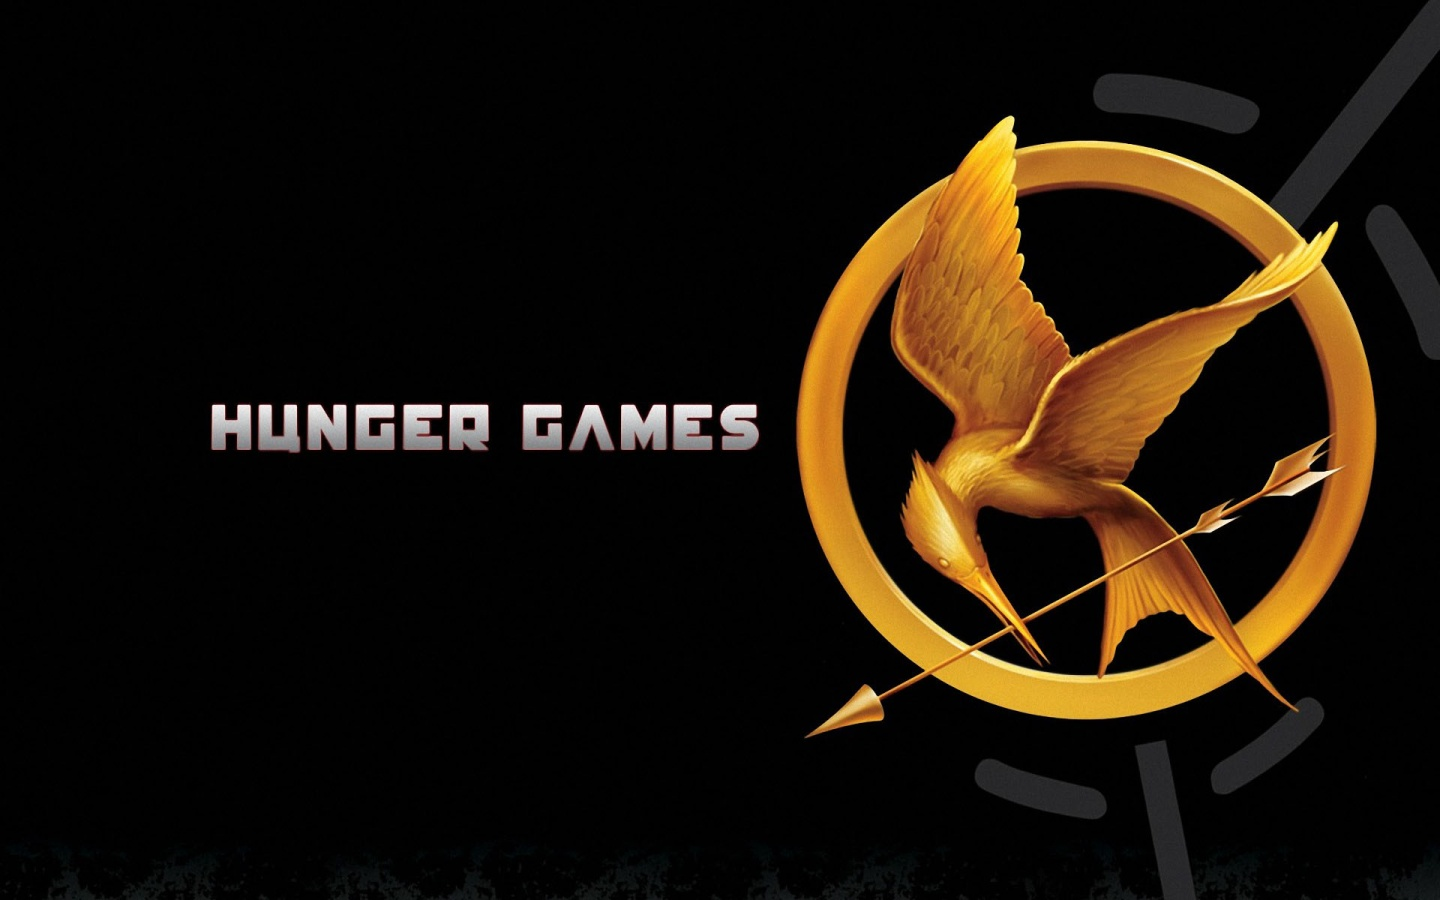 1440x900 The Hunger Games Poster desktop PC and Mac wallpaper 1440x900